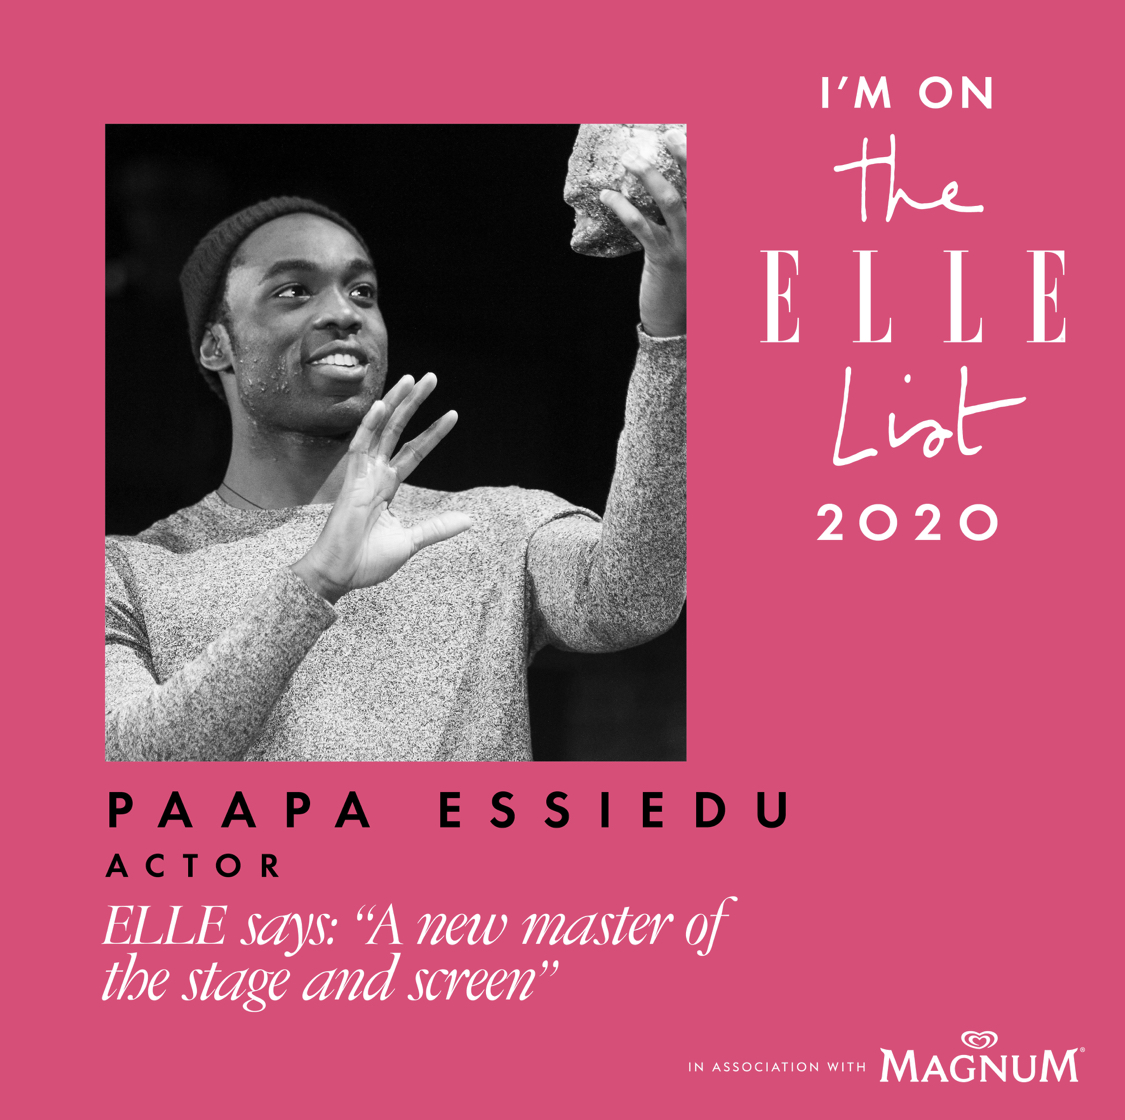 E L L E L I S T 2 0 2 0 Thank you @ELLEUK Very proud and humbled to be listed alongside these real Gs 💪🏿💪🏿💪🏿